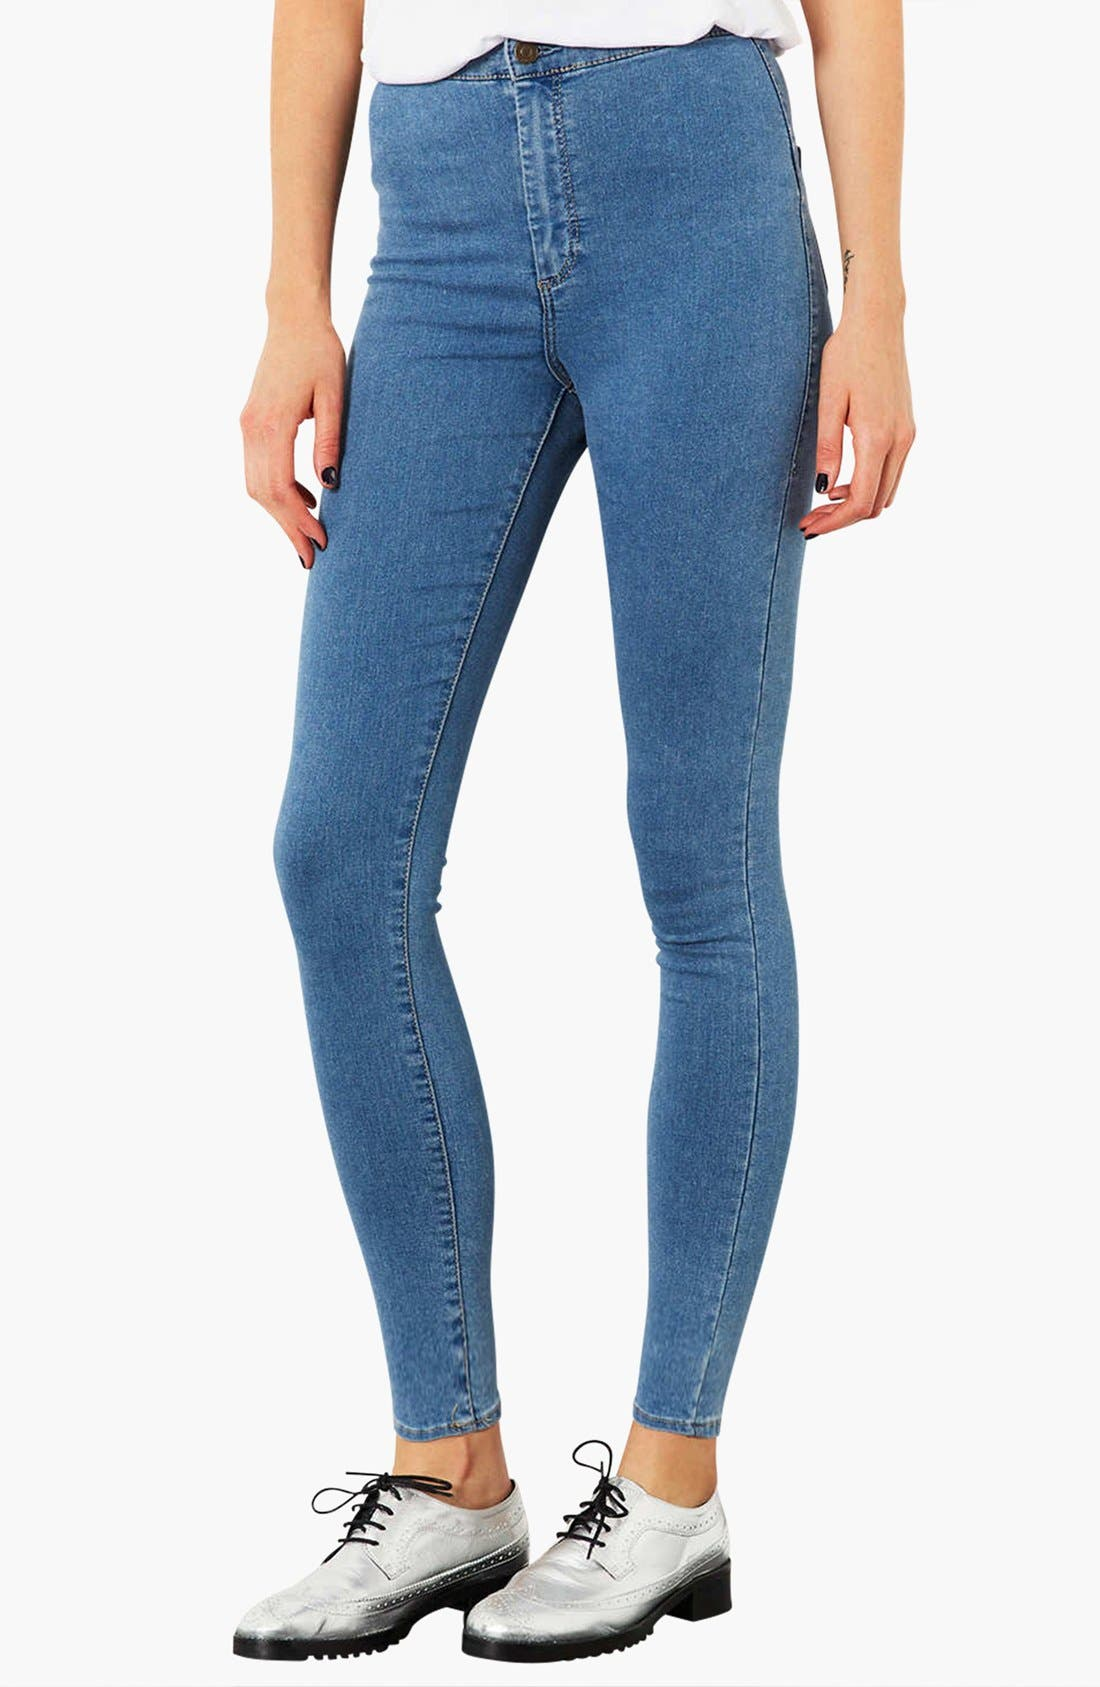 Alternate Image 1 Selected - Topshop Moto 'Joni' High Rise Skinny Jeans (Mid Stone) (Short)